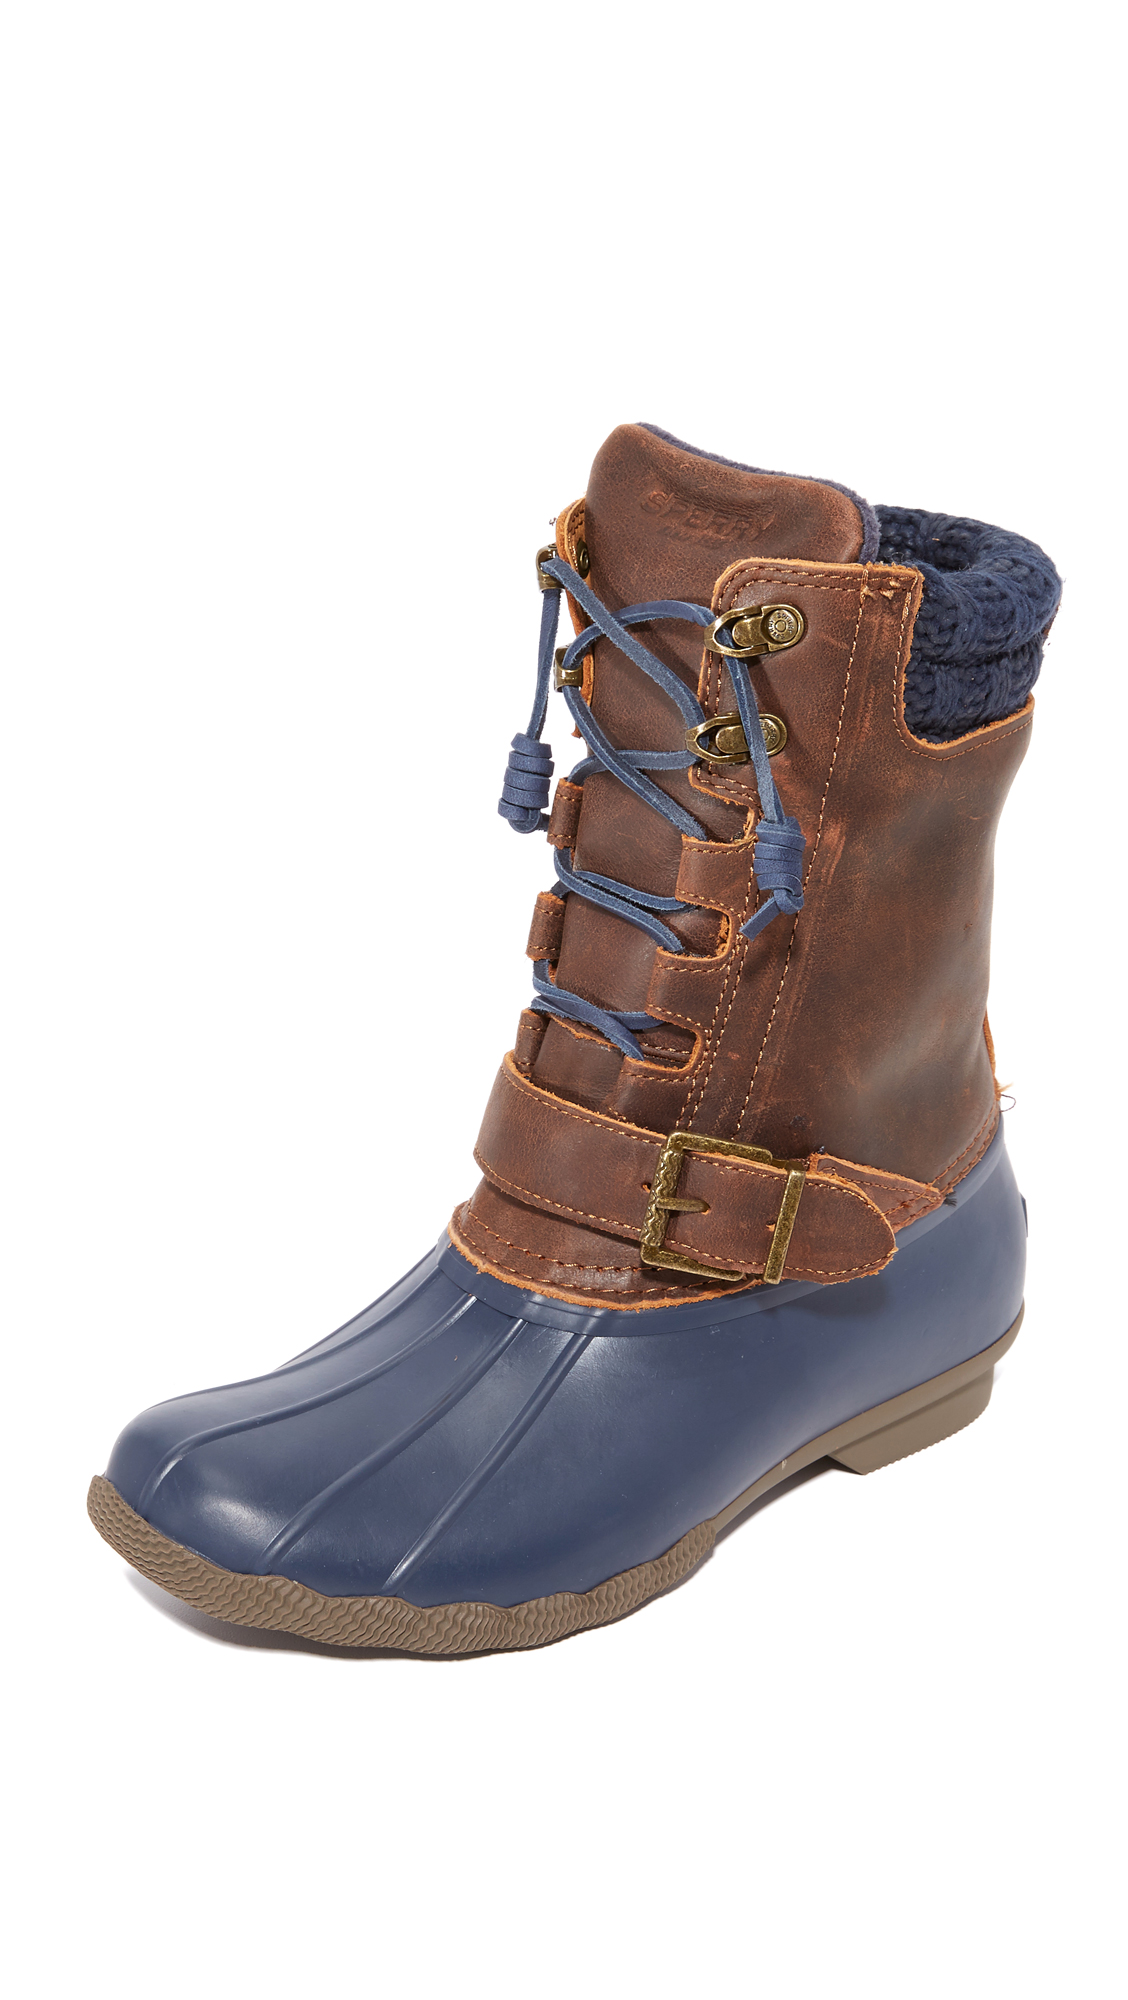 sperry female sperry saltwater misty boots navybrown